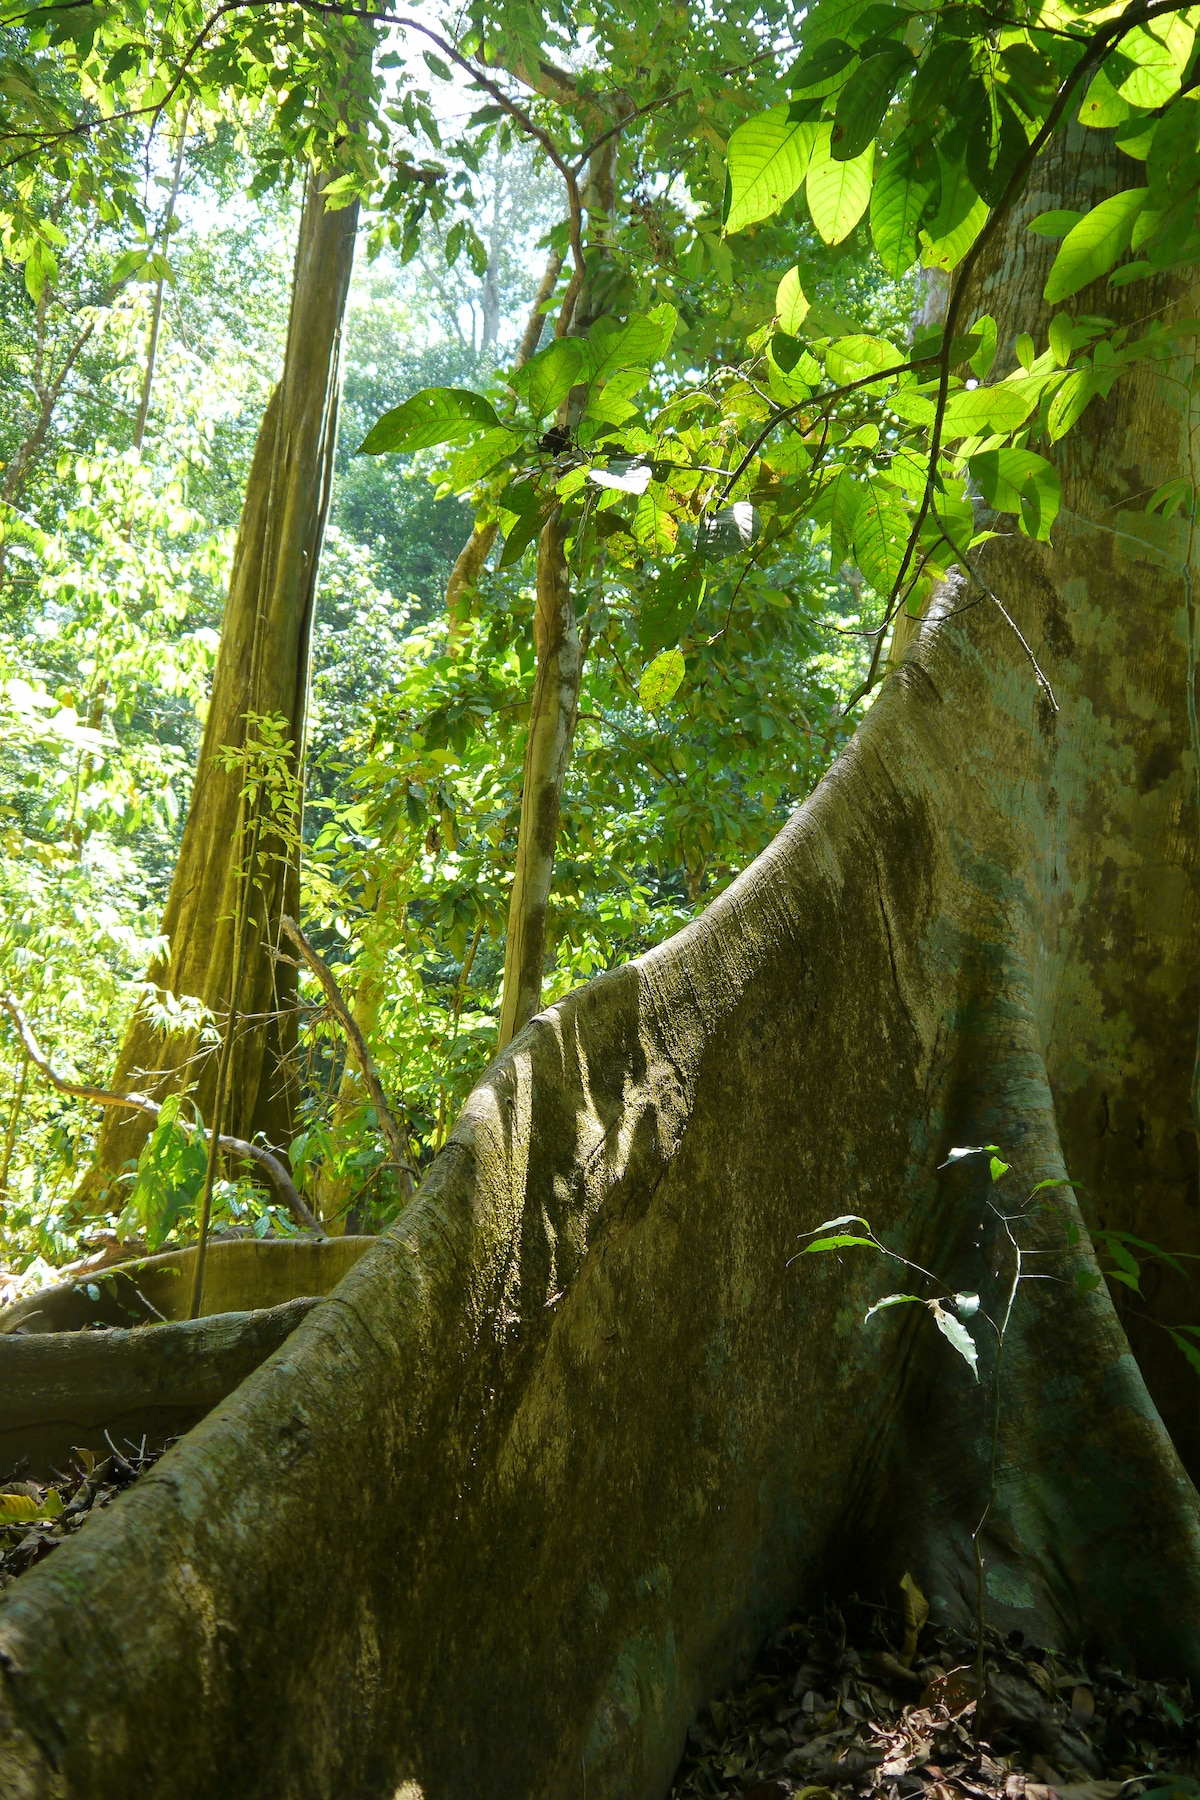 Jungle hikes are just steps away from Cabinas Ola Mar ( olamarcr [dot] com ).